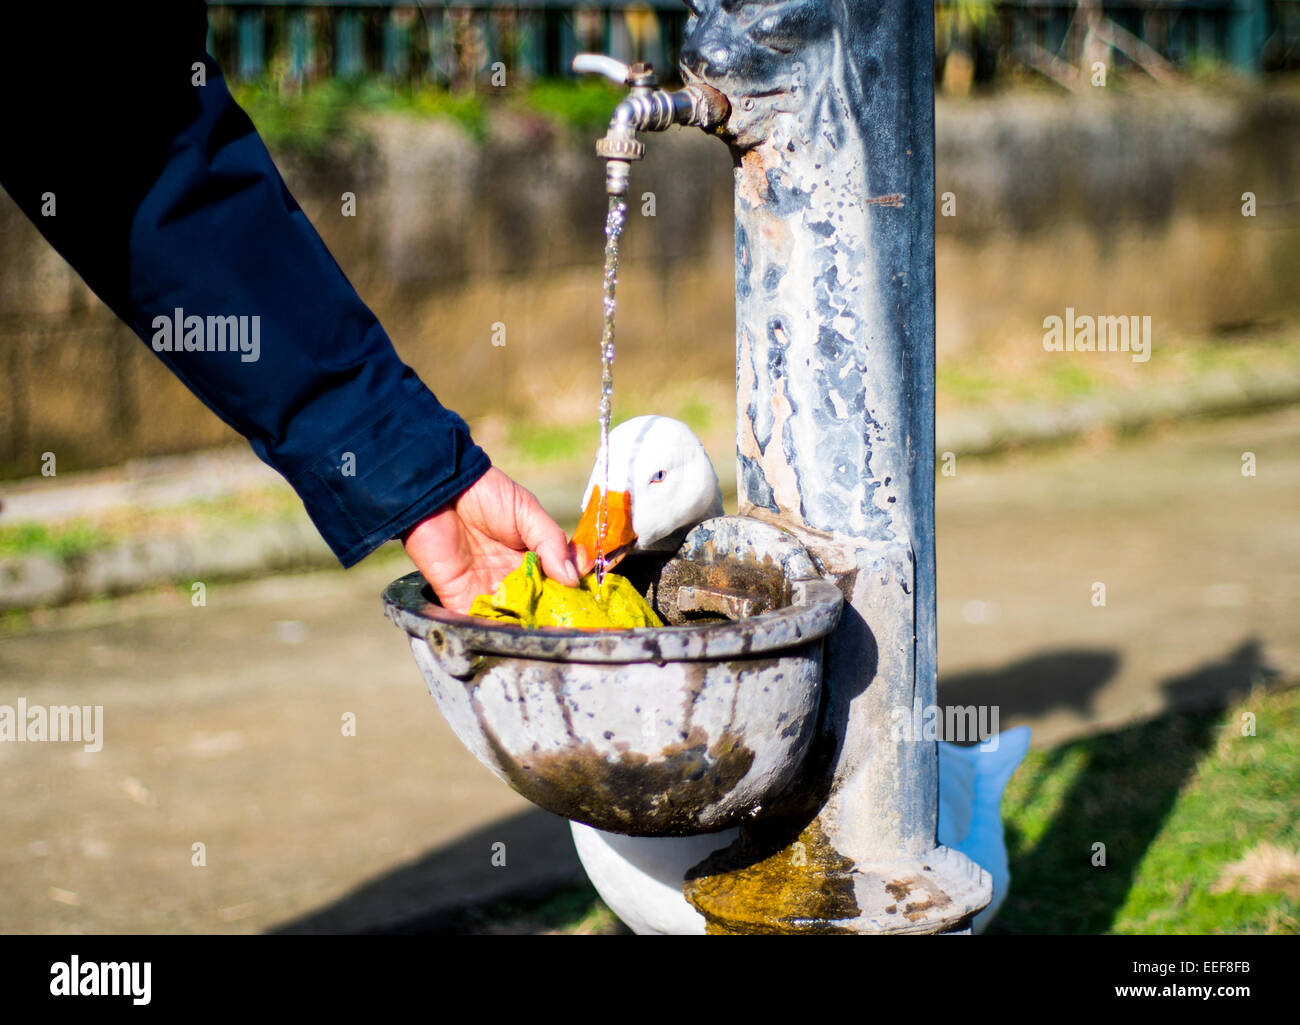 White Duck joking with hand in park - Stock Image